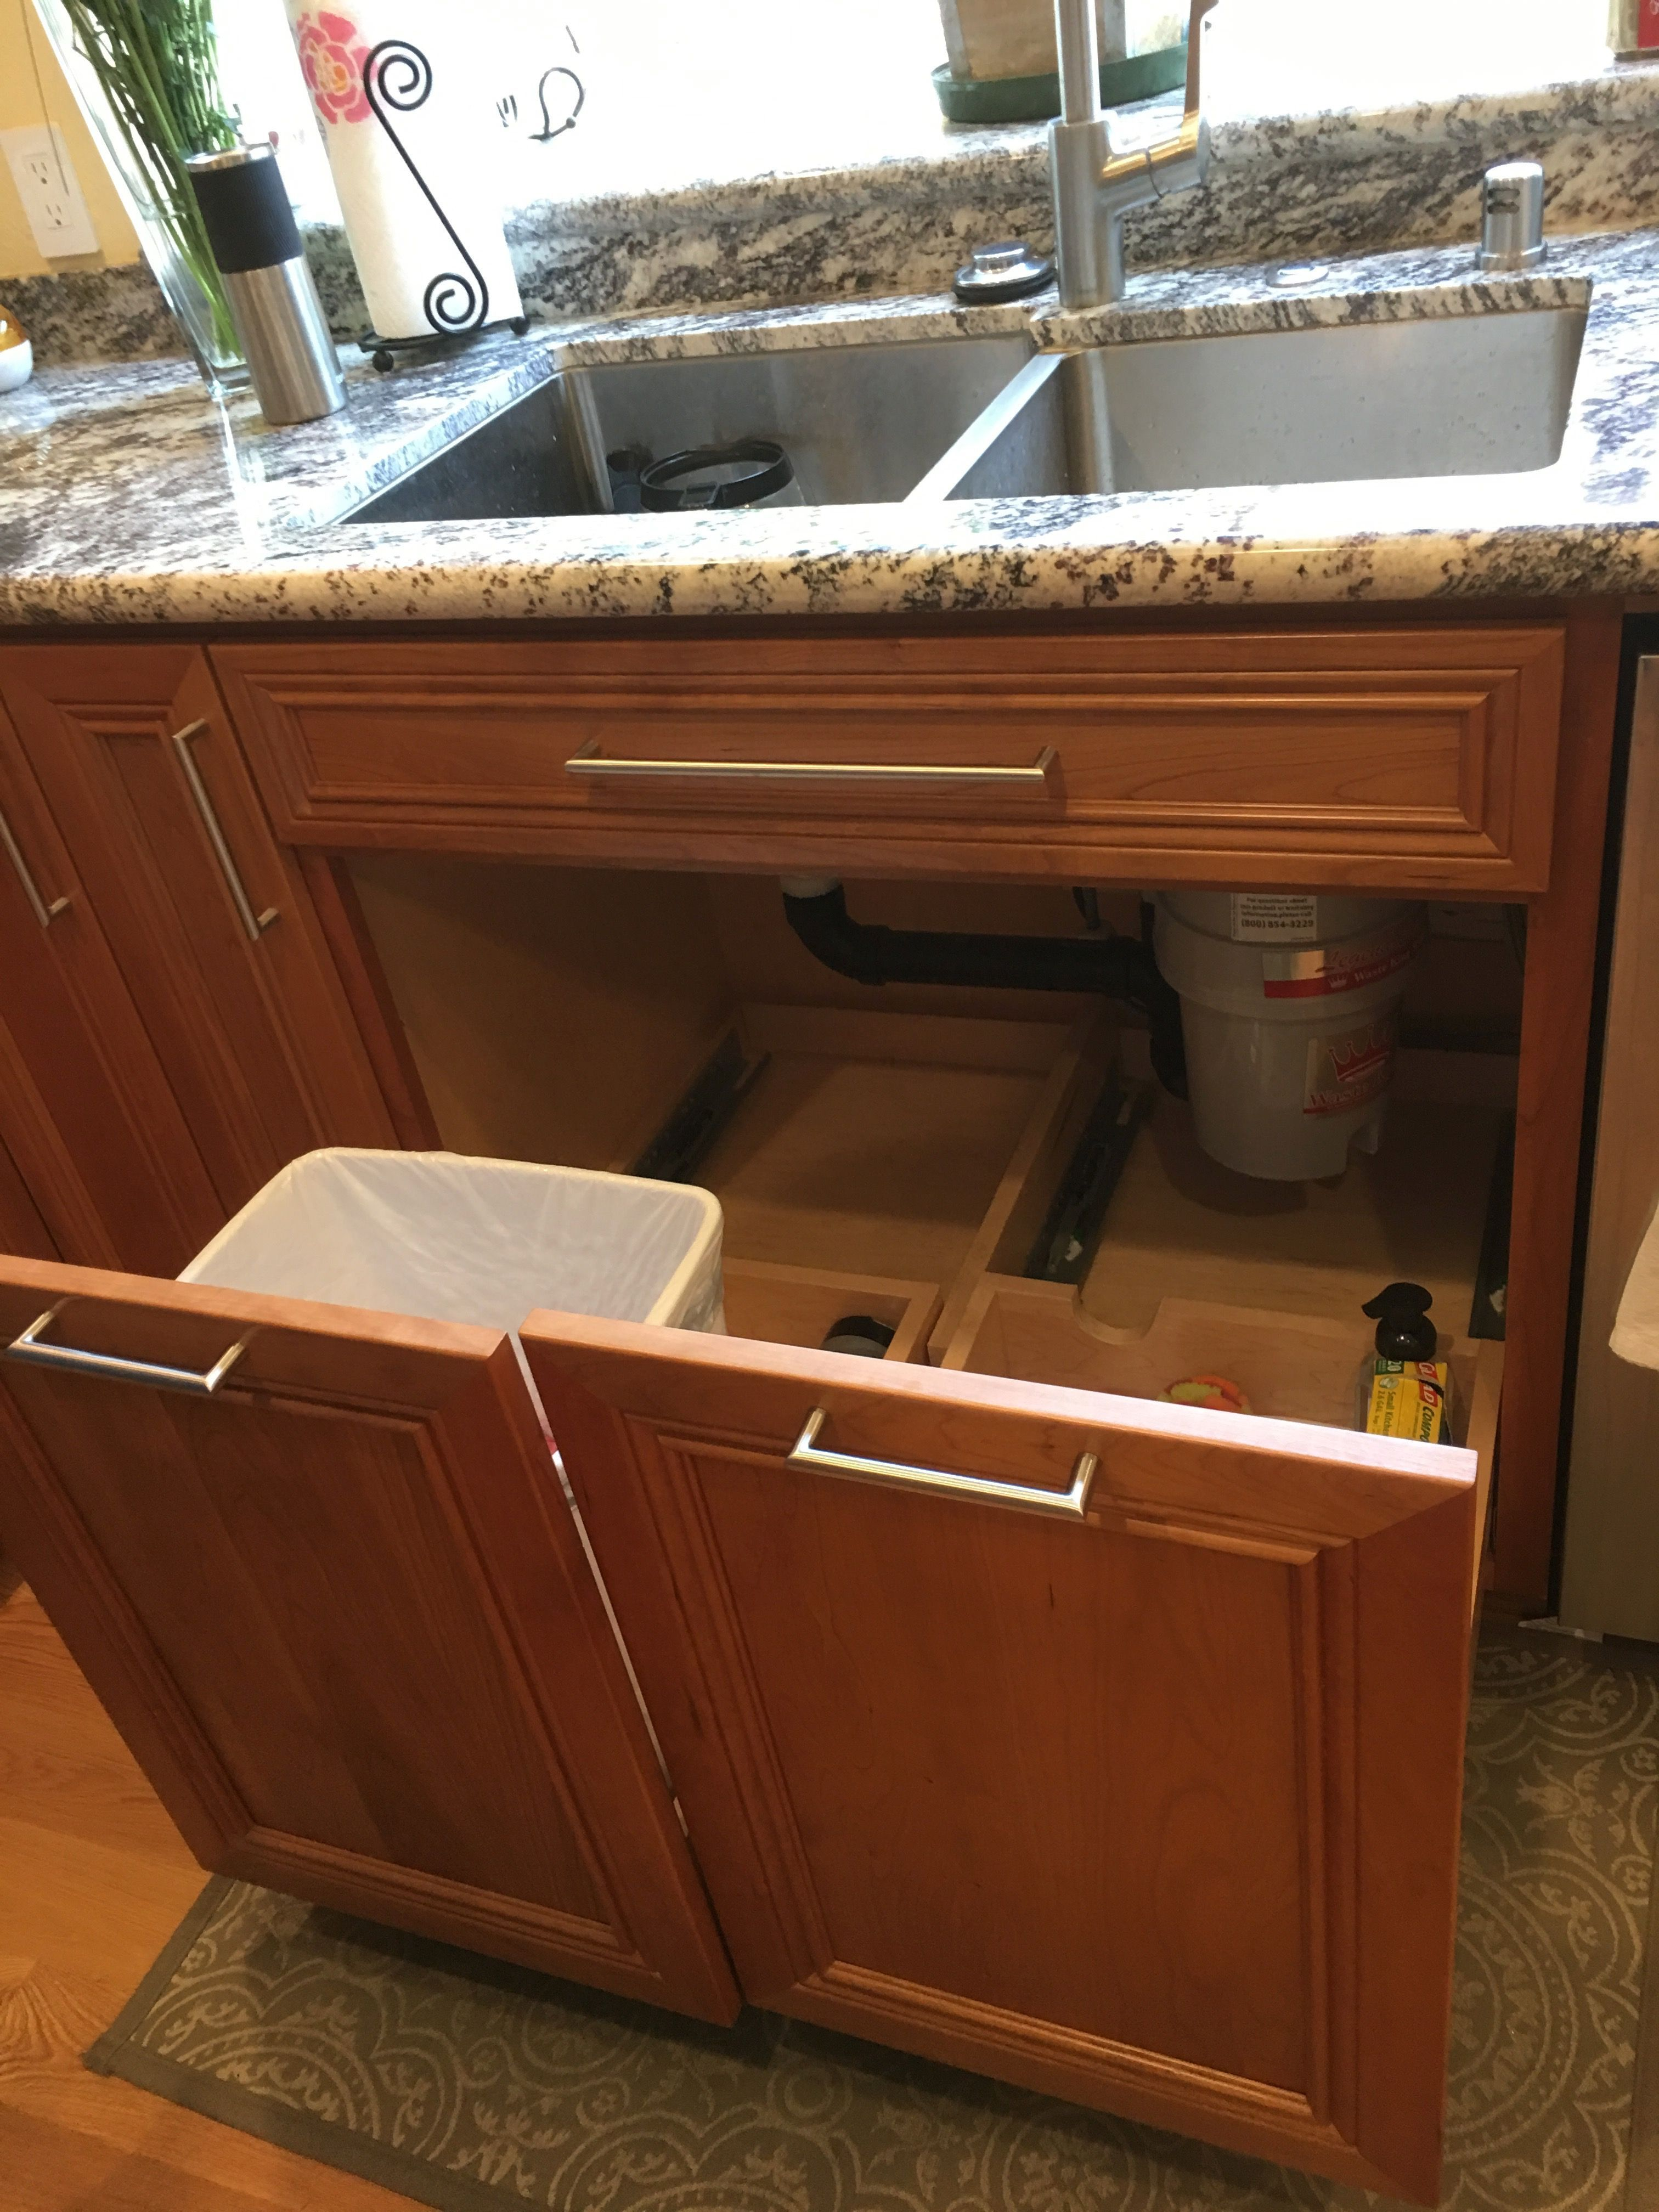 I Really Like The Idea Of Having Pull Out Drawers Under Sink